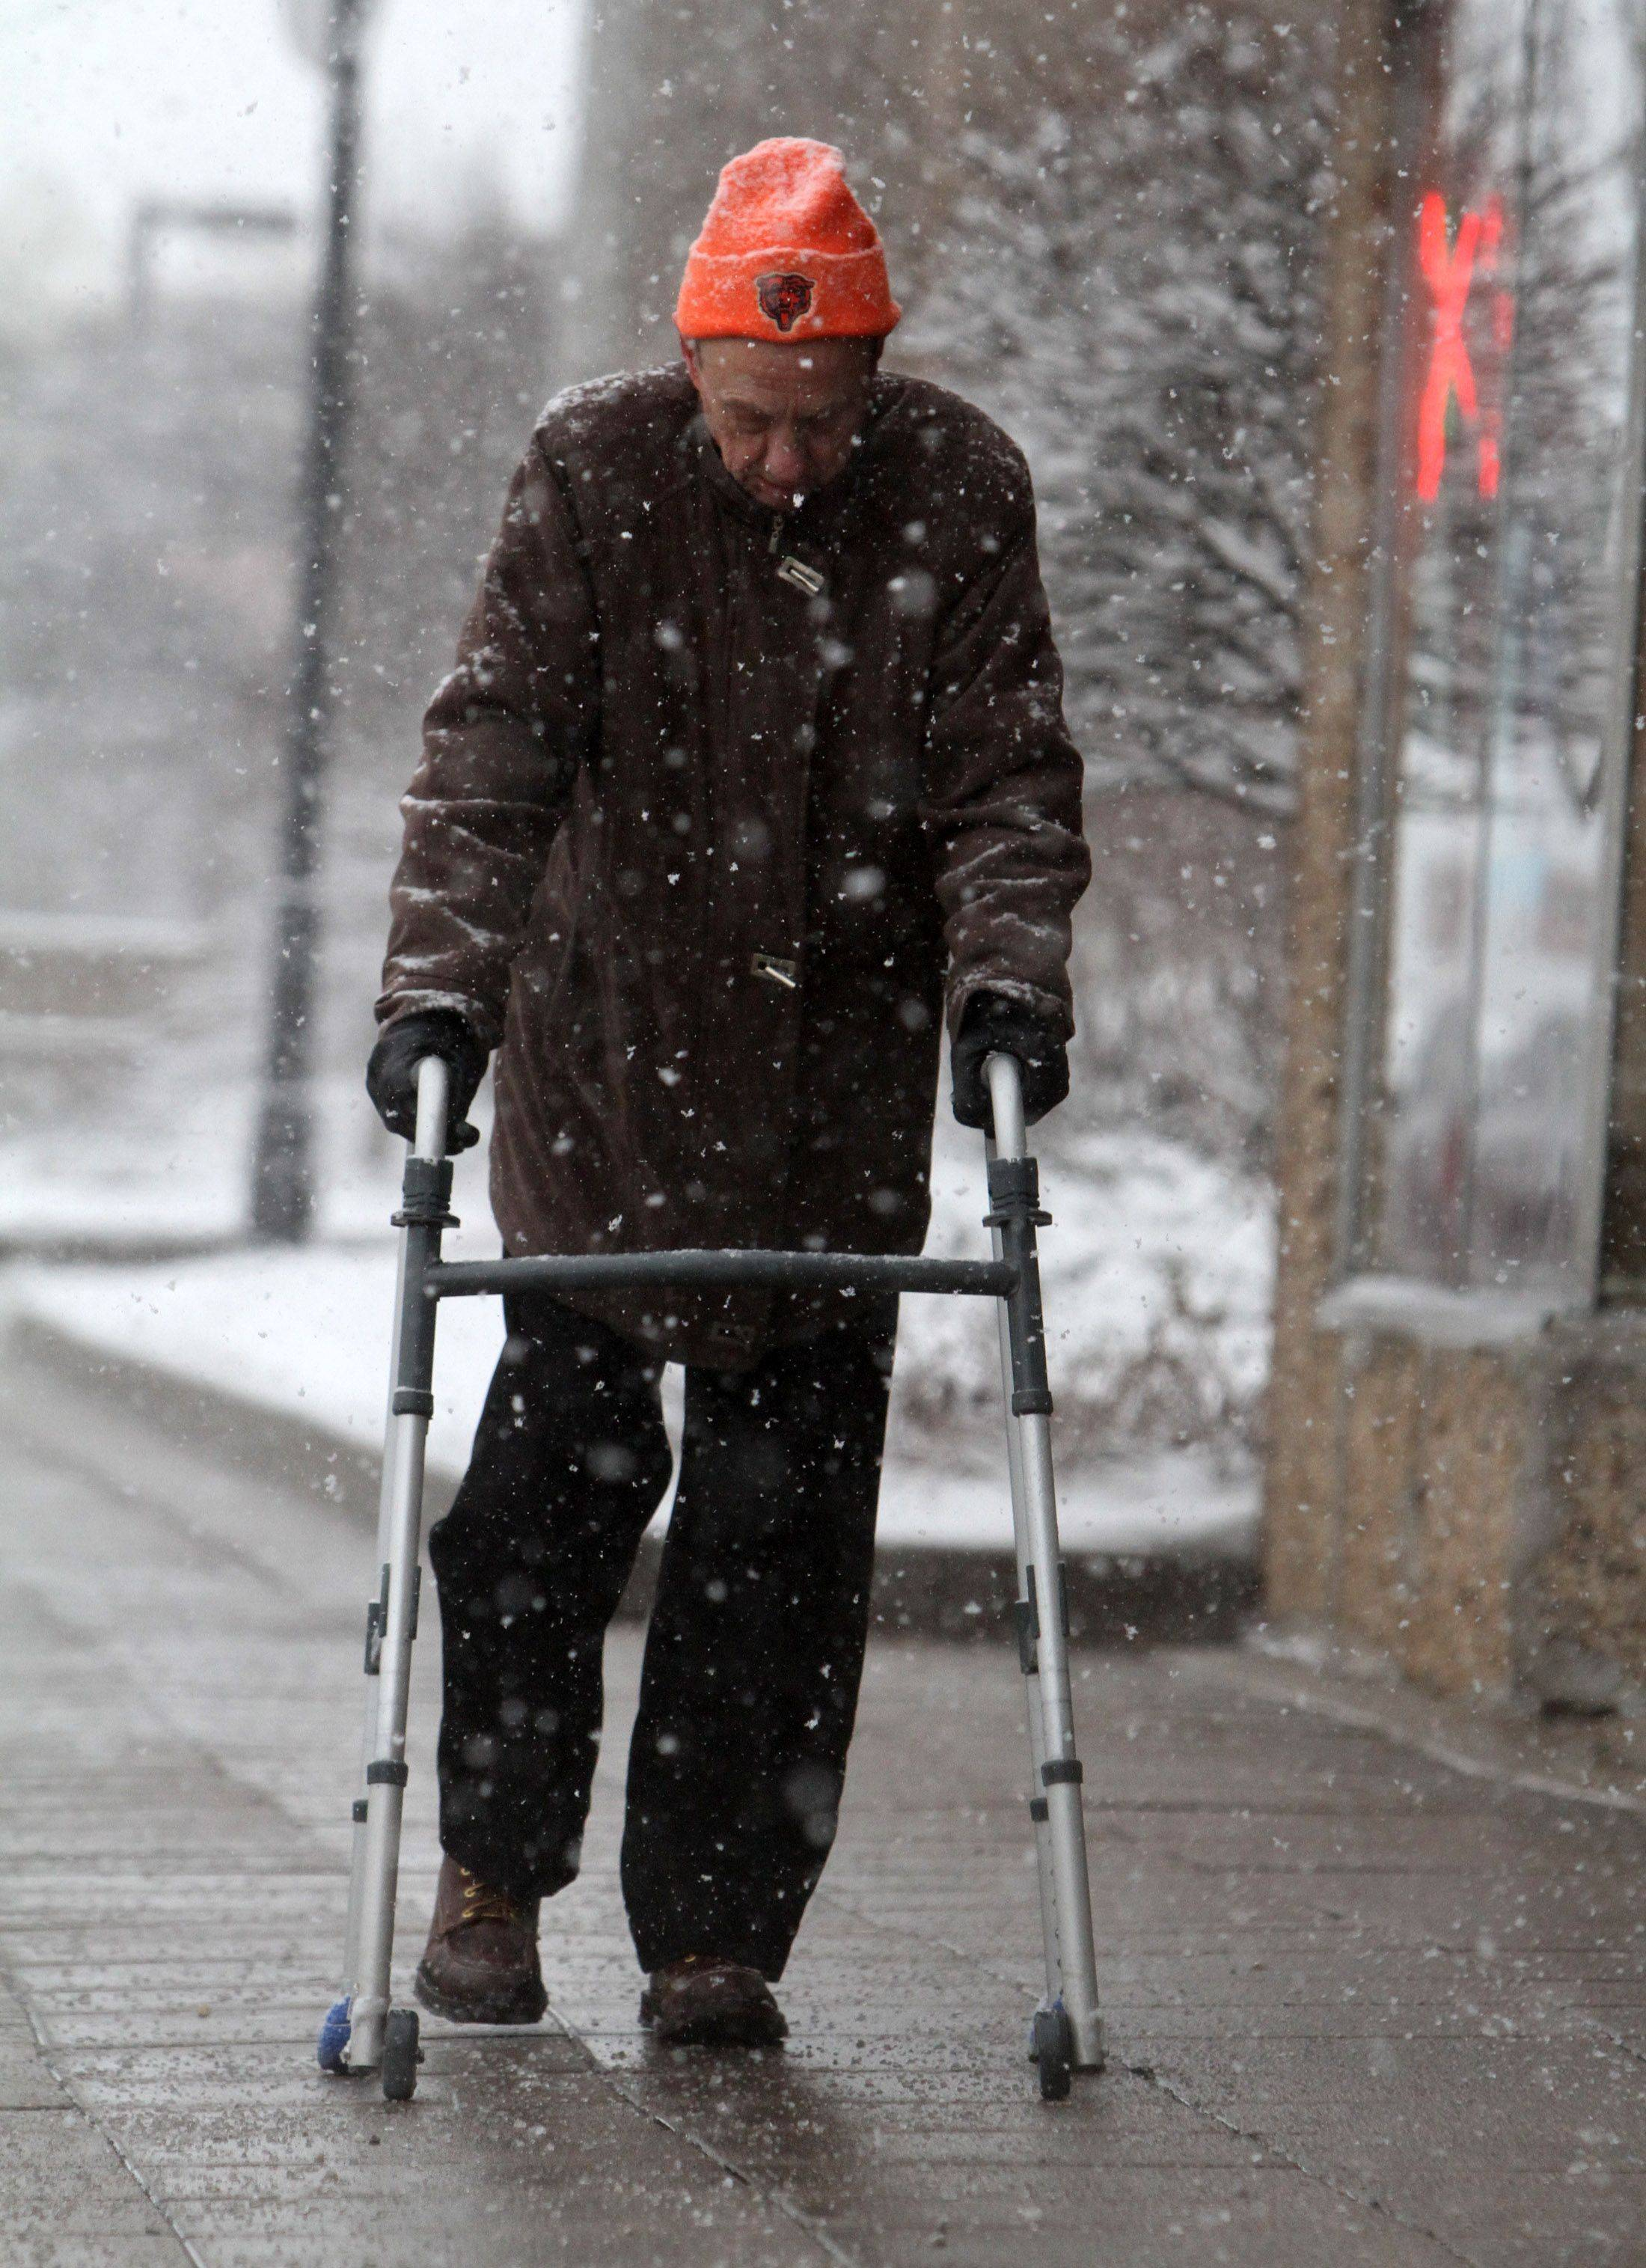 Florian Bialas walks along sidewalk on Northwest Highway as snow falls in Des Plaines. Bialas said he was headed for a warm dinner and coffee nearby.